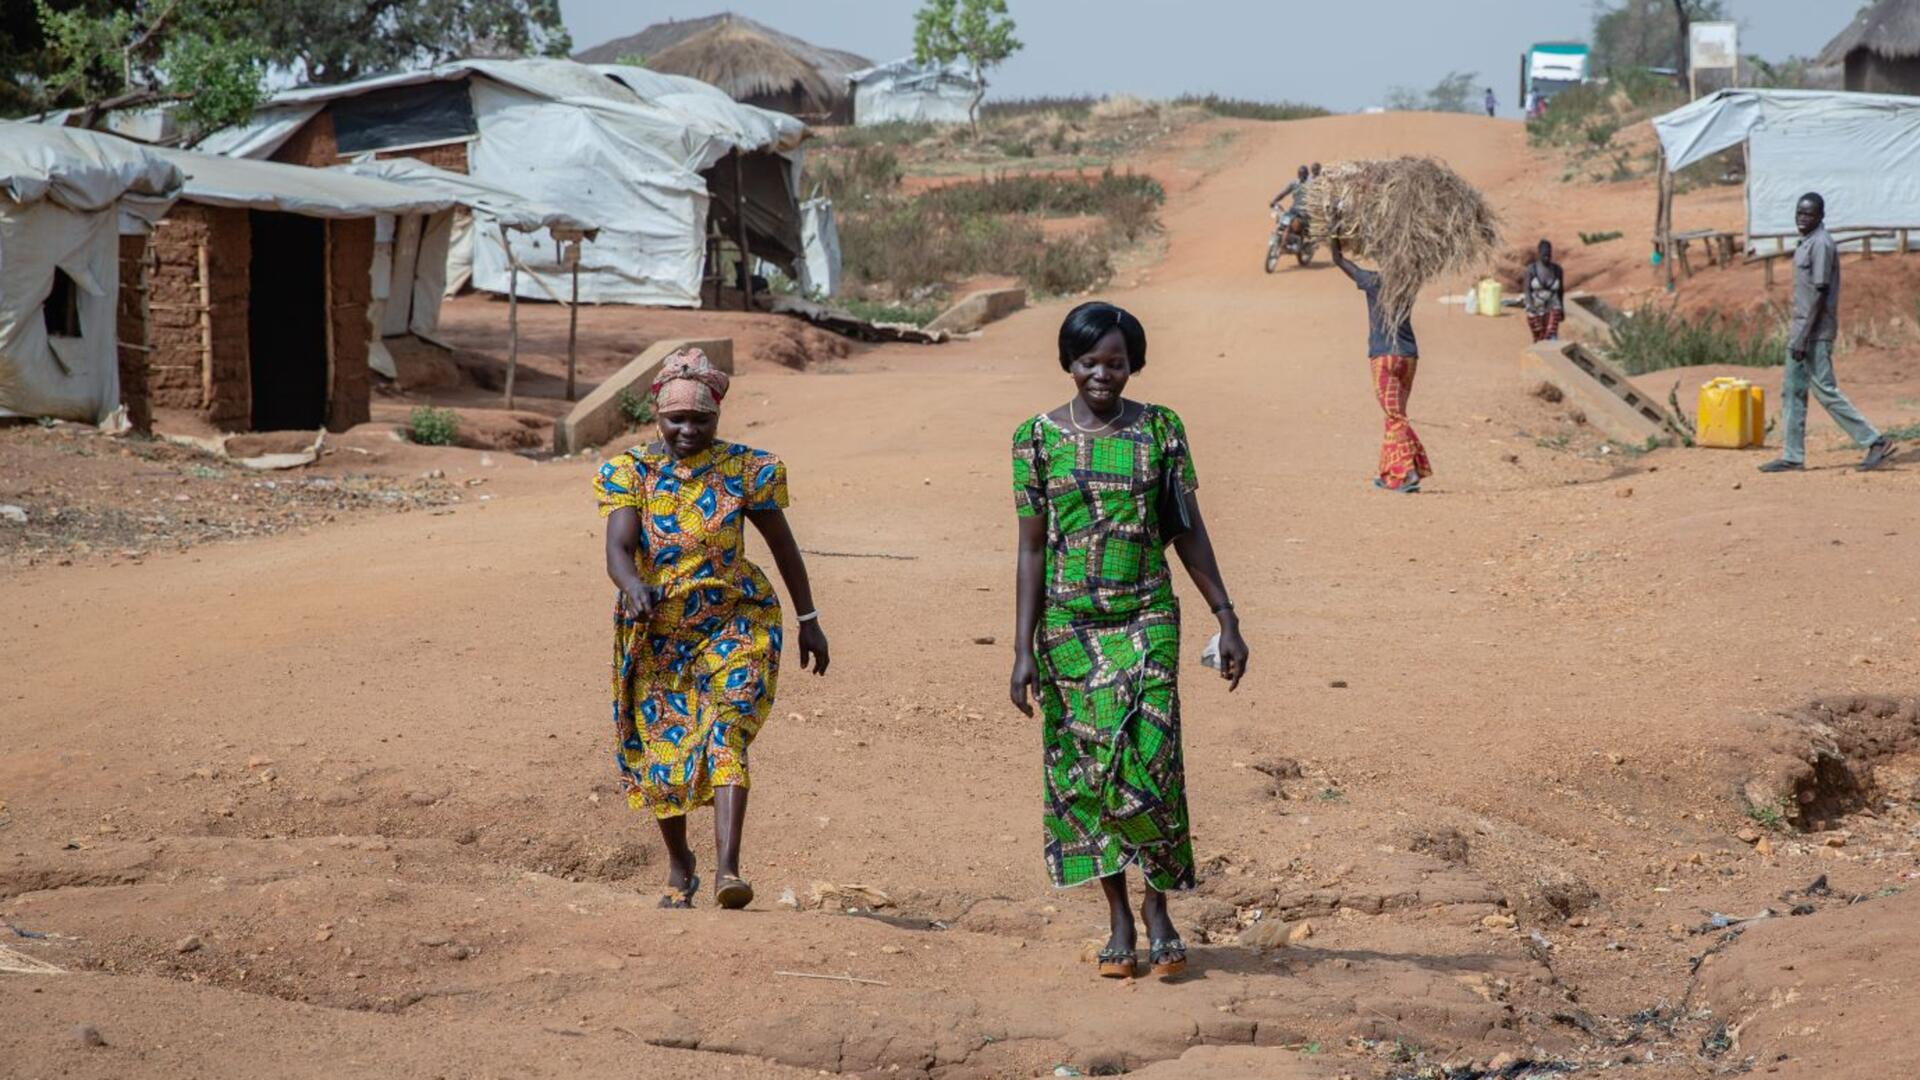 Women's rights activists Foni Grace and Loyce Tabu walk in Bidi Bidi refugeee settlement in Uganda.They are at the forefront of the photo and there are small makeshift homes and a man carrying a bale of hay behind them.